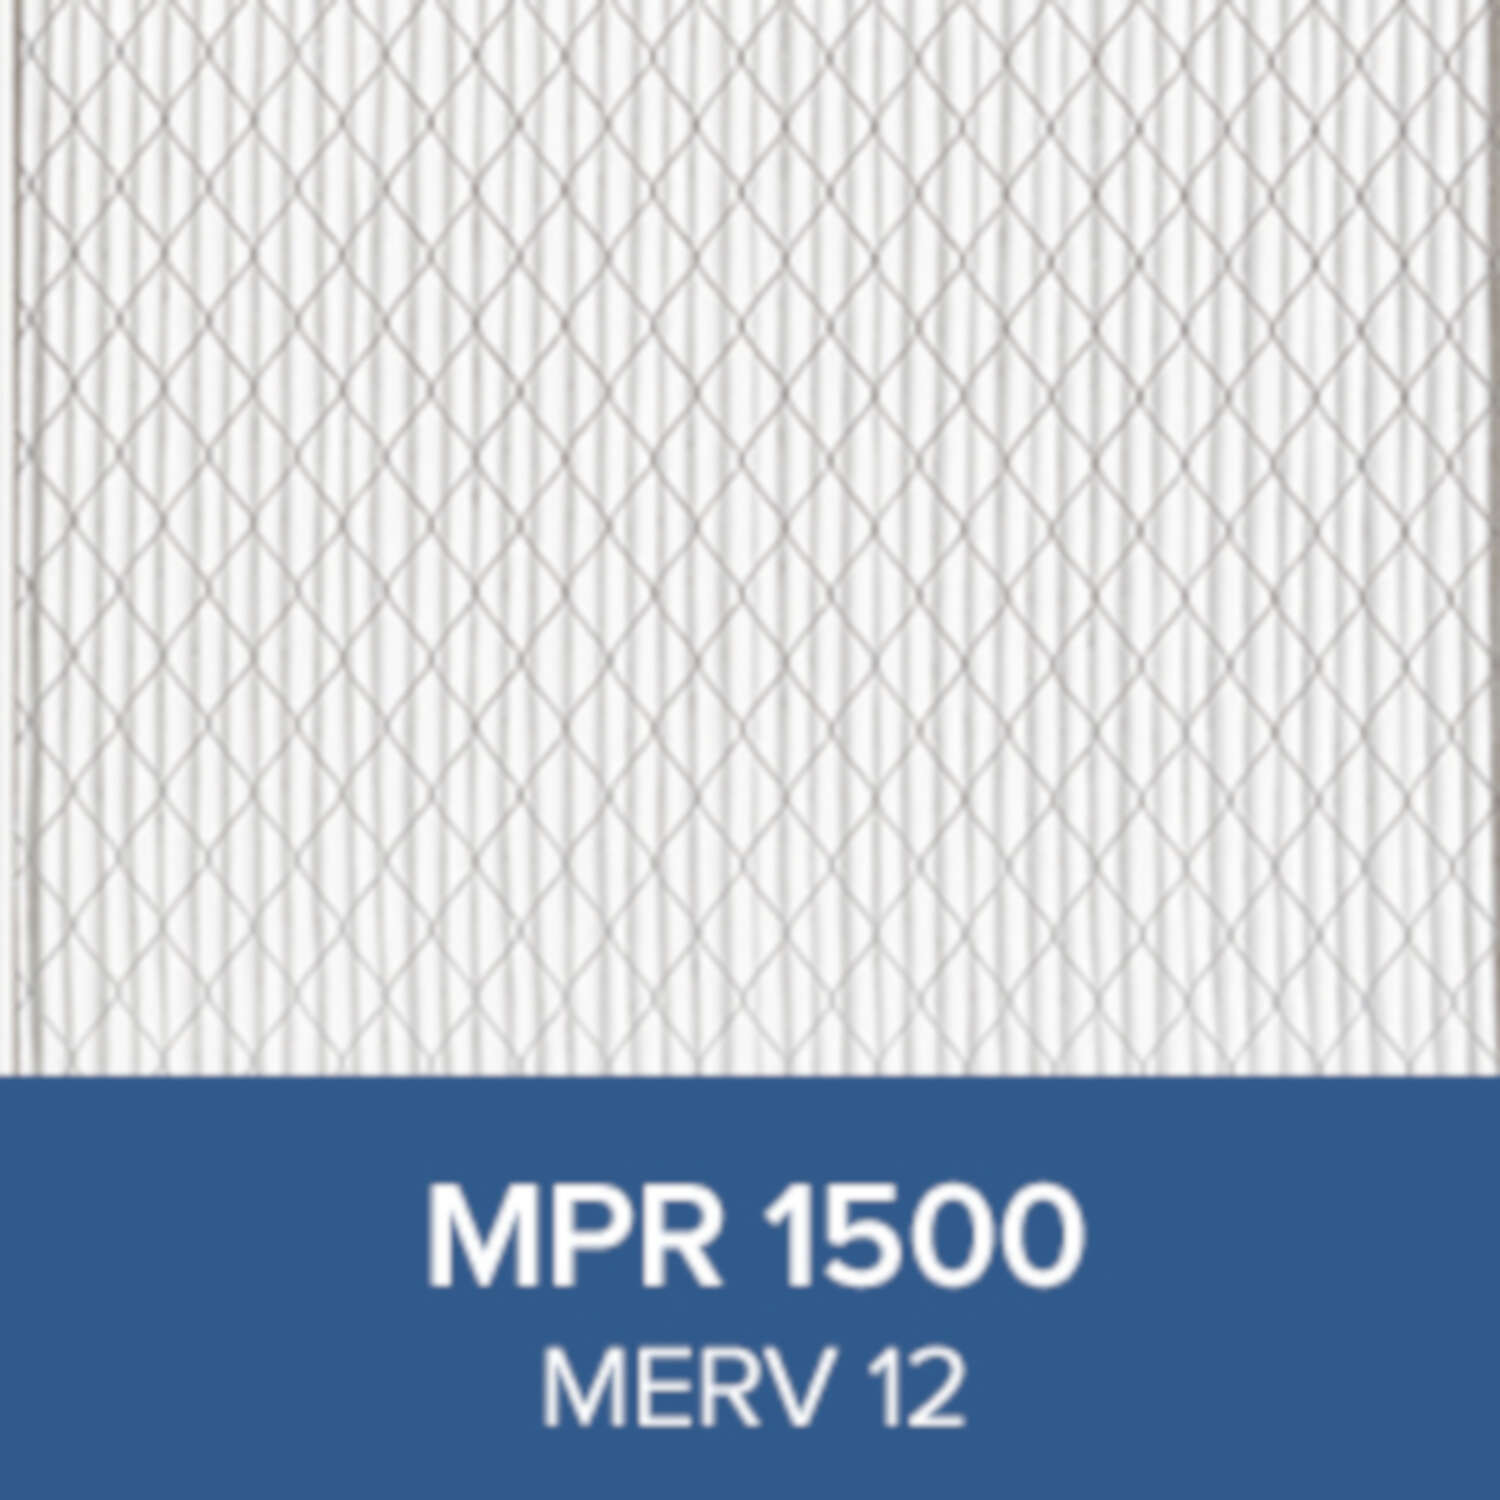 3M  Filtrete  20 in. W x 25 in. H x 1 in. D 12 MERV Pleated Air Filter